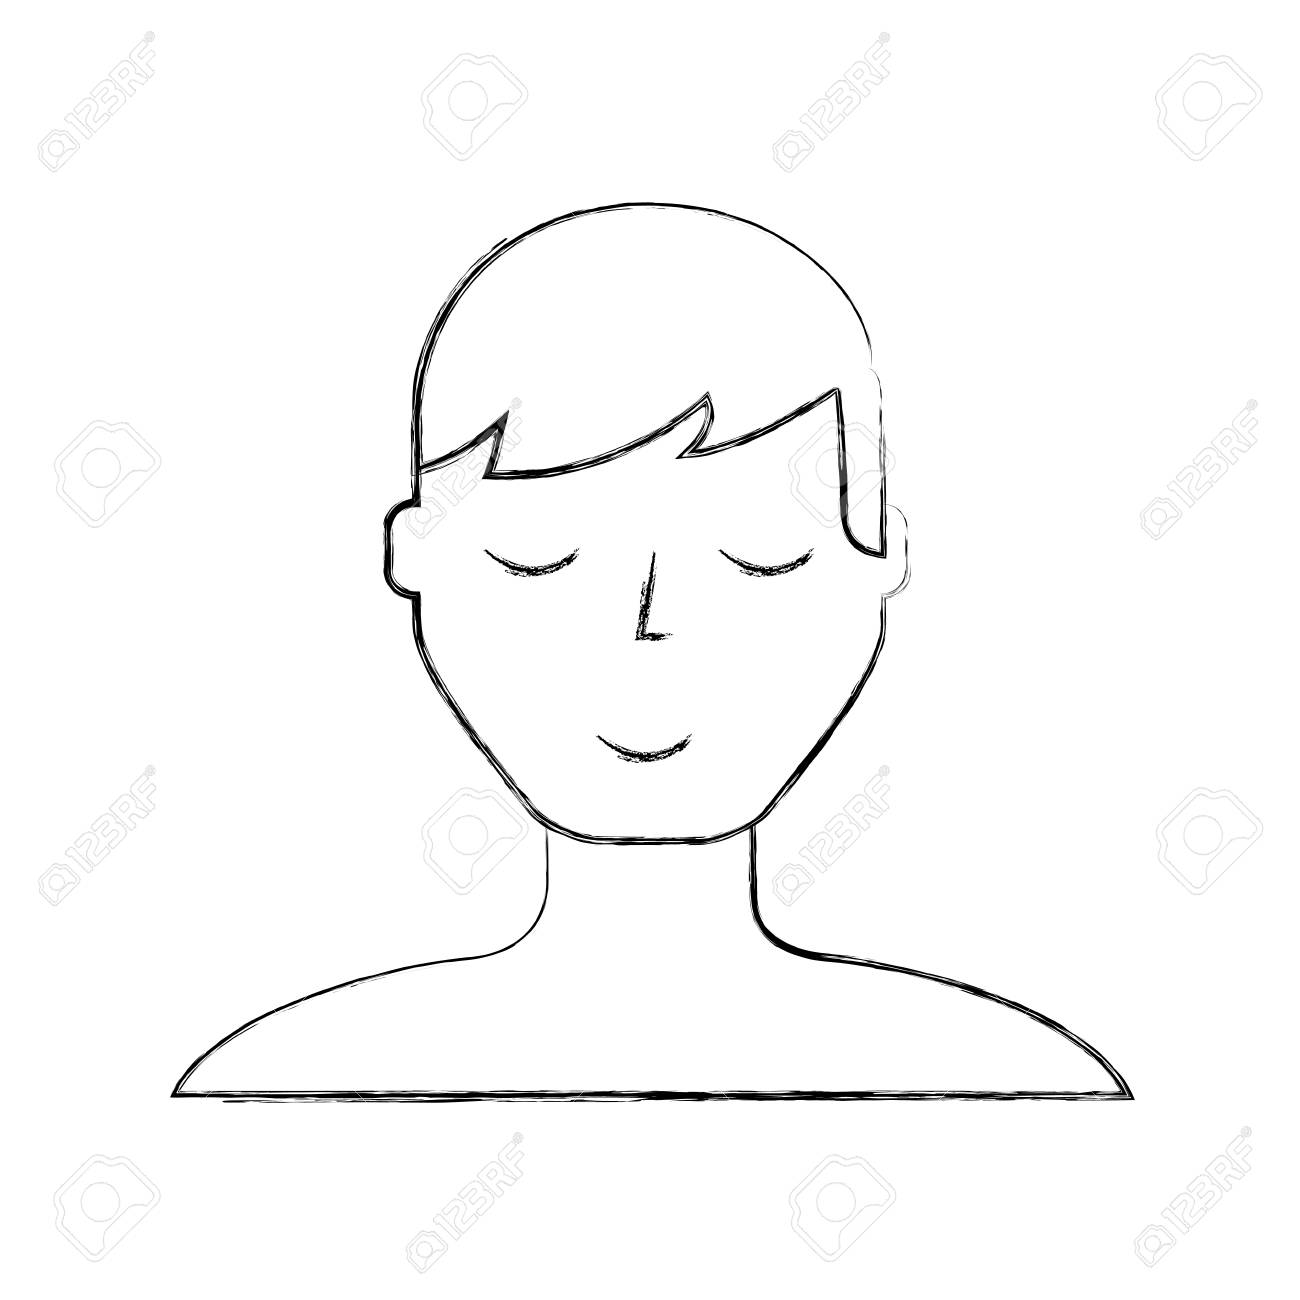 sketch draw man face cartoon vector graphic design royalty free rh 123rf com